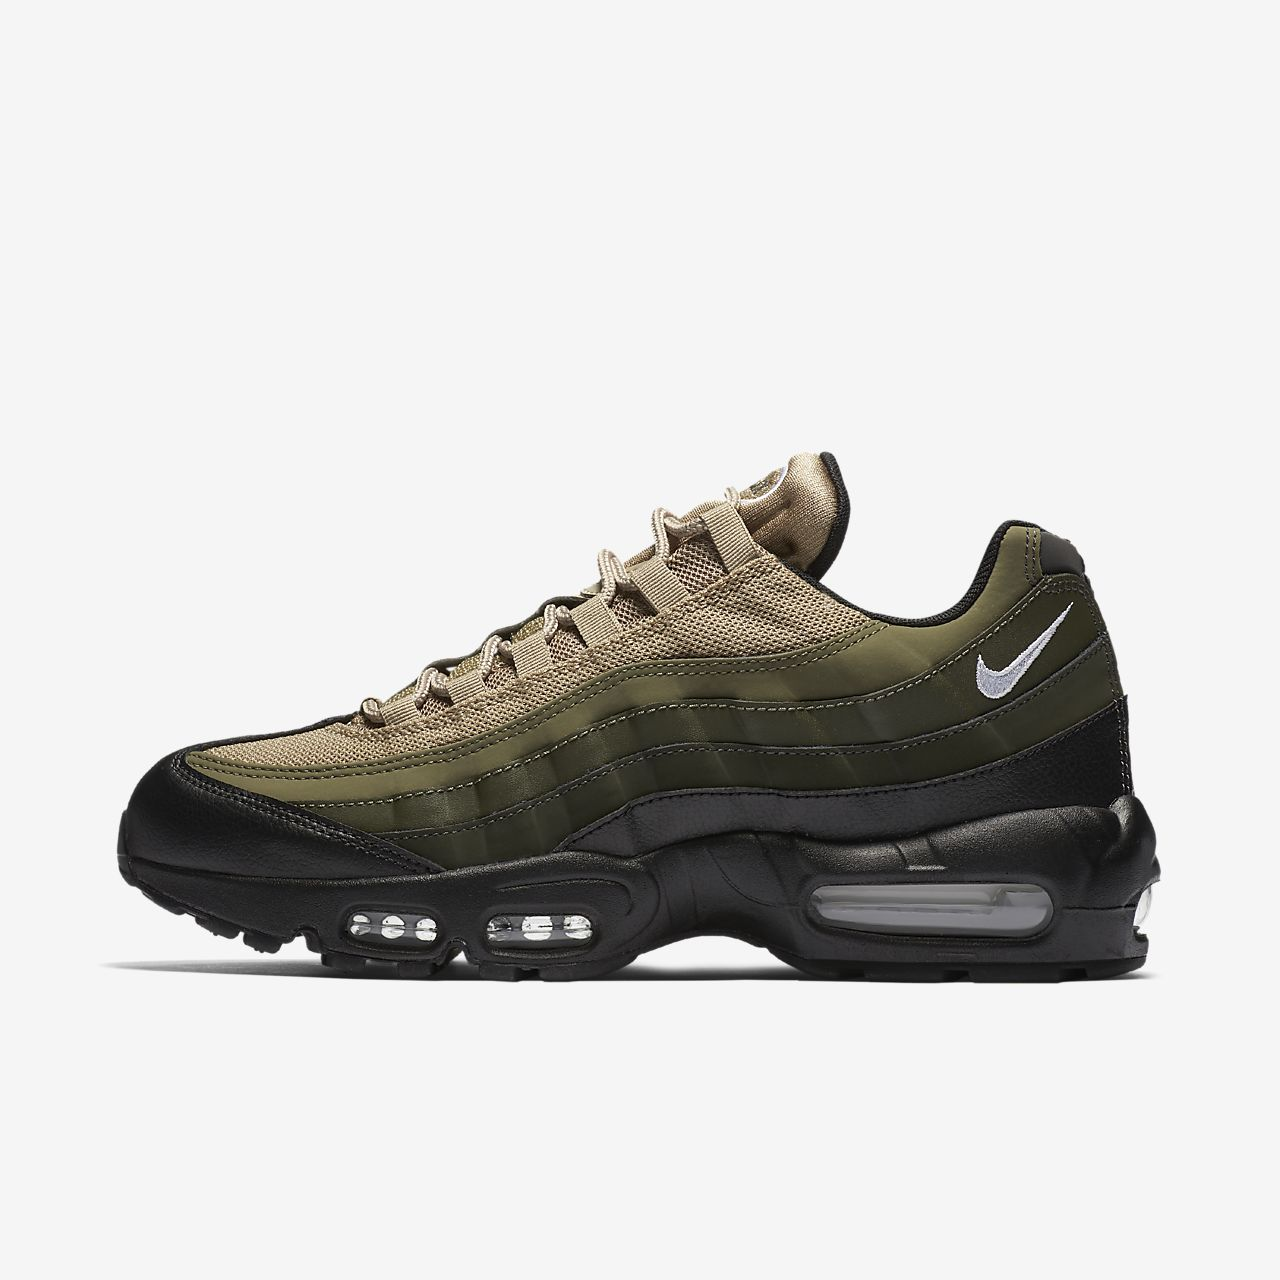 new arrival 5b2a3 db91d ... Achat Deve Nike Air Max 95 Femme Chaussures Pas Cher Alainhe; Sneakers  ...